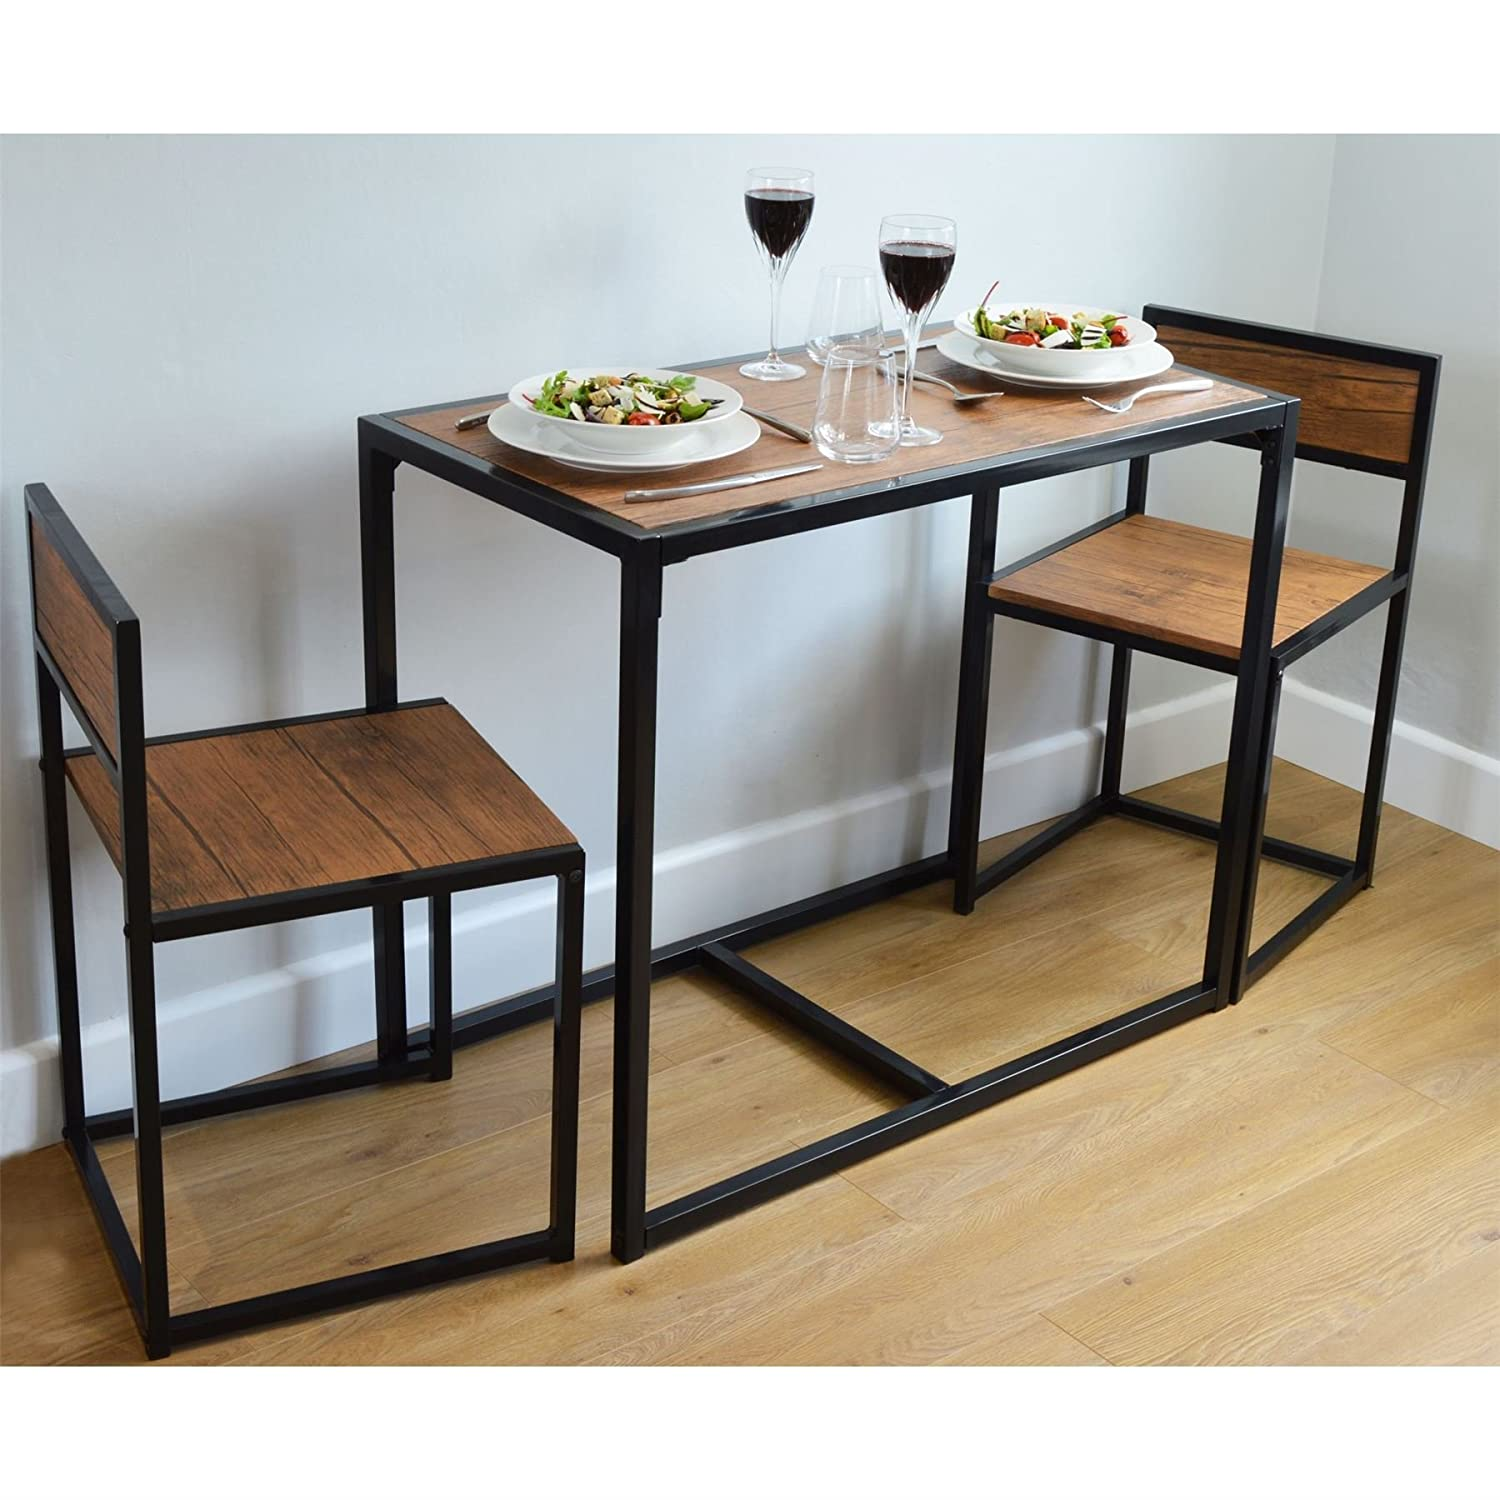 Harbour Housewares 2 Person Space Saving pact Kitchen Dining